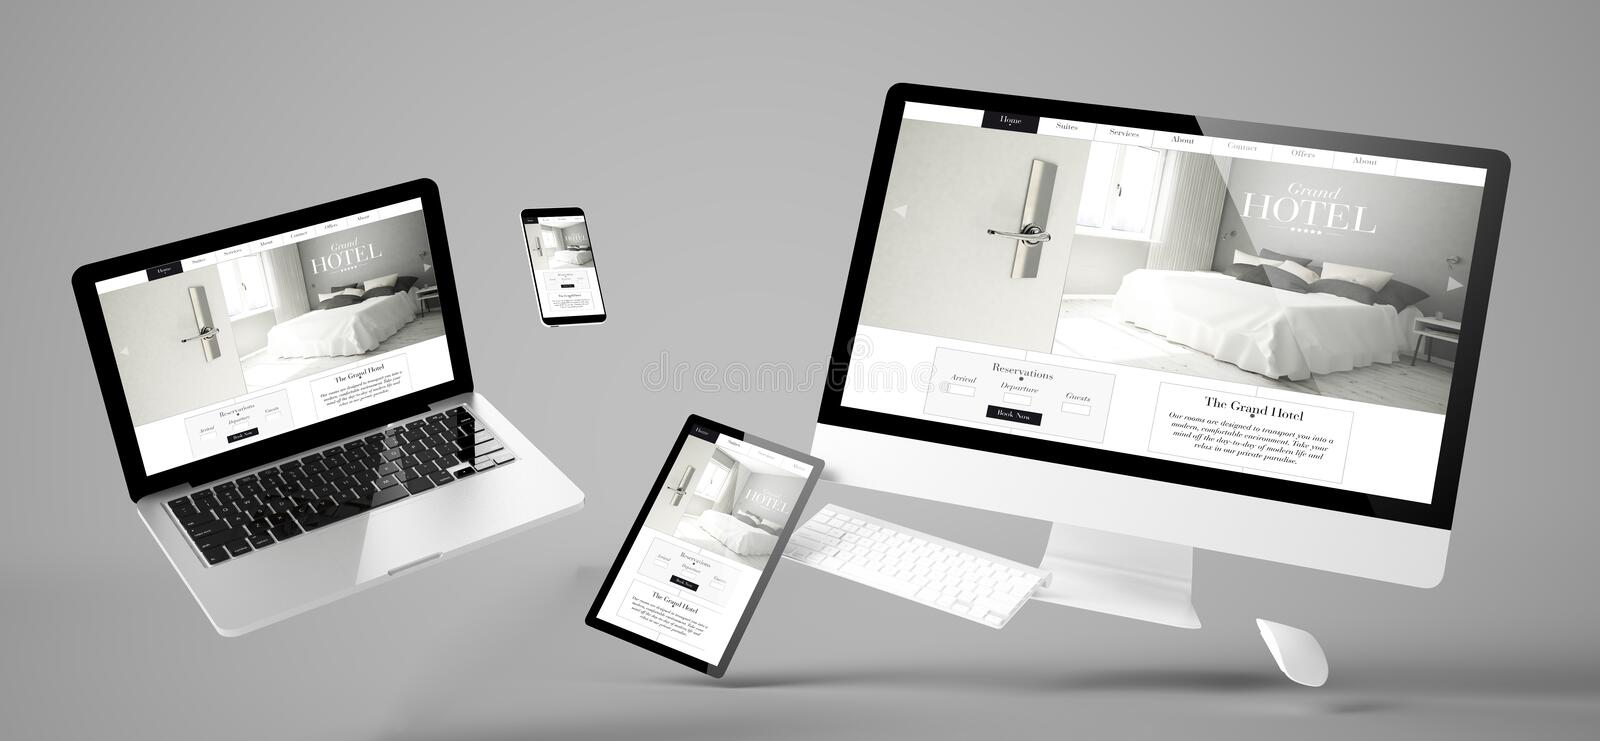 flying devices grand hotel responsive website royalty free stock images